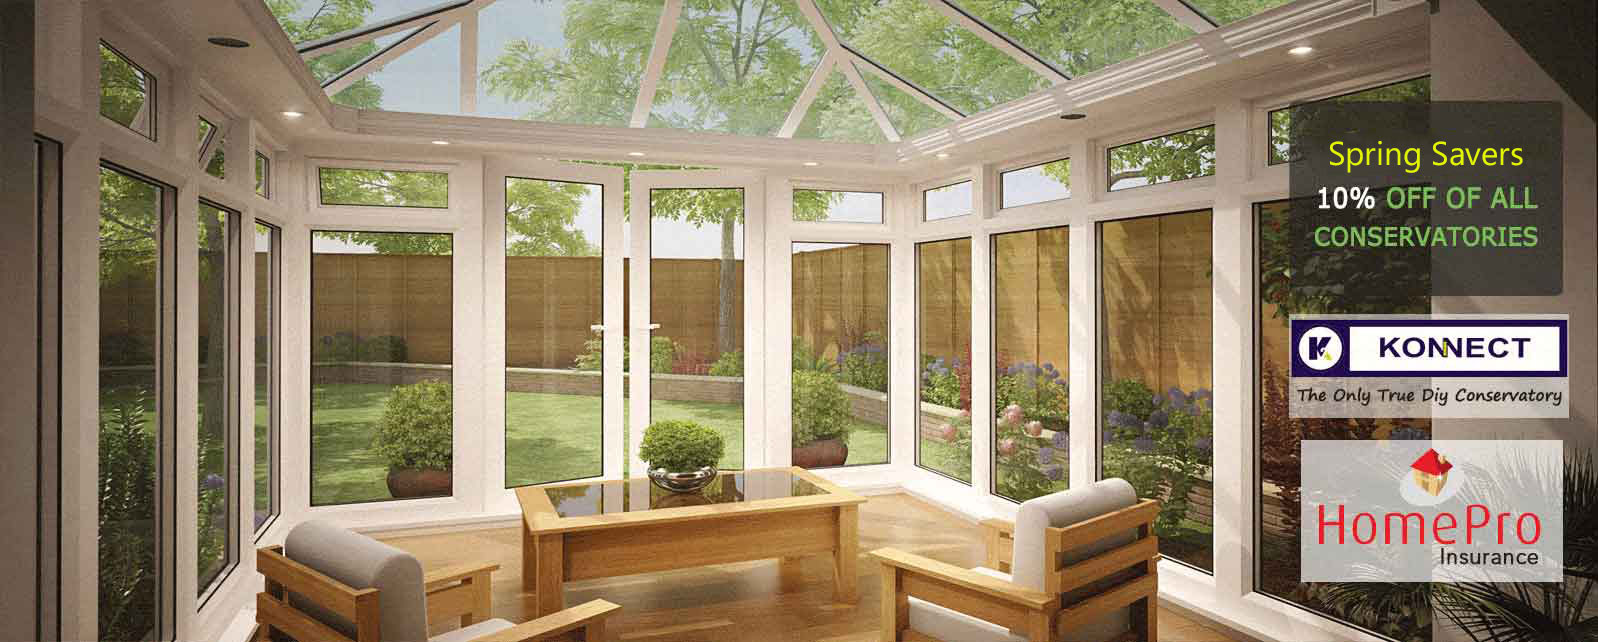 diy conservatory online quote